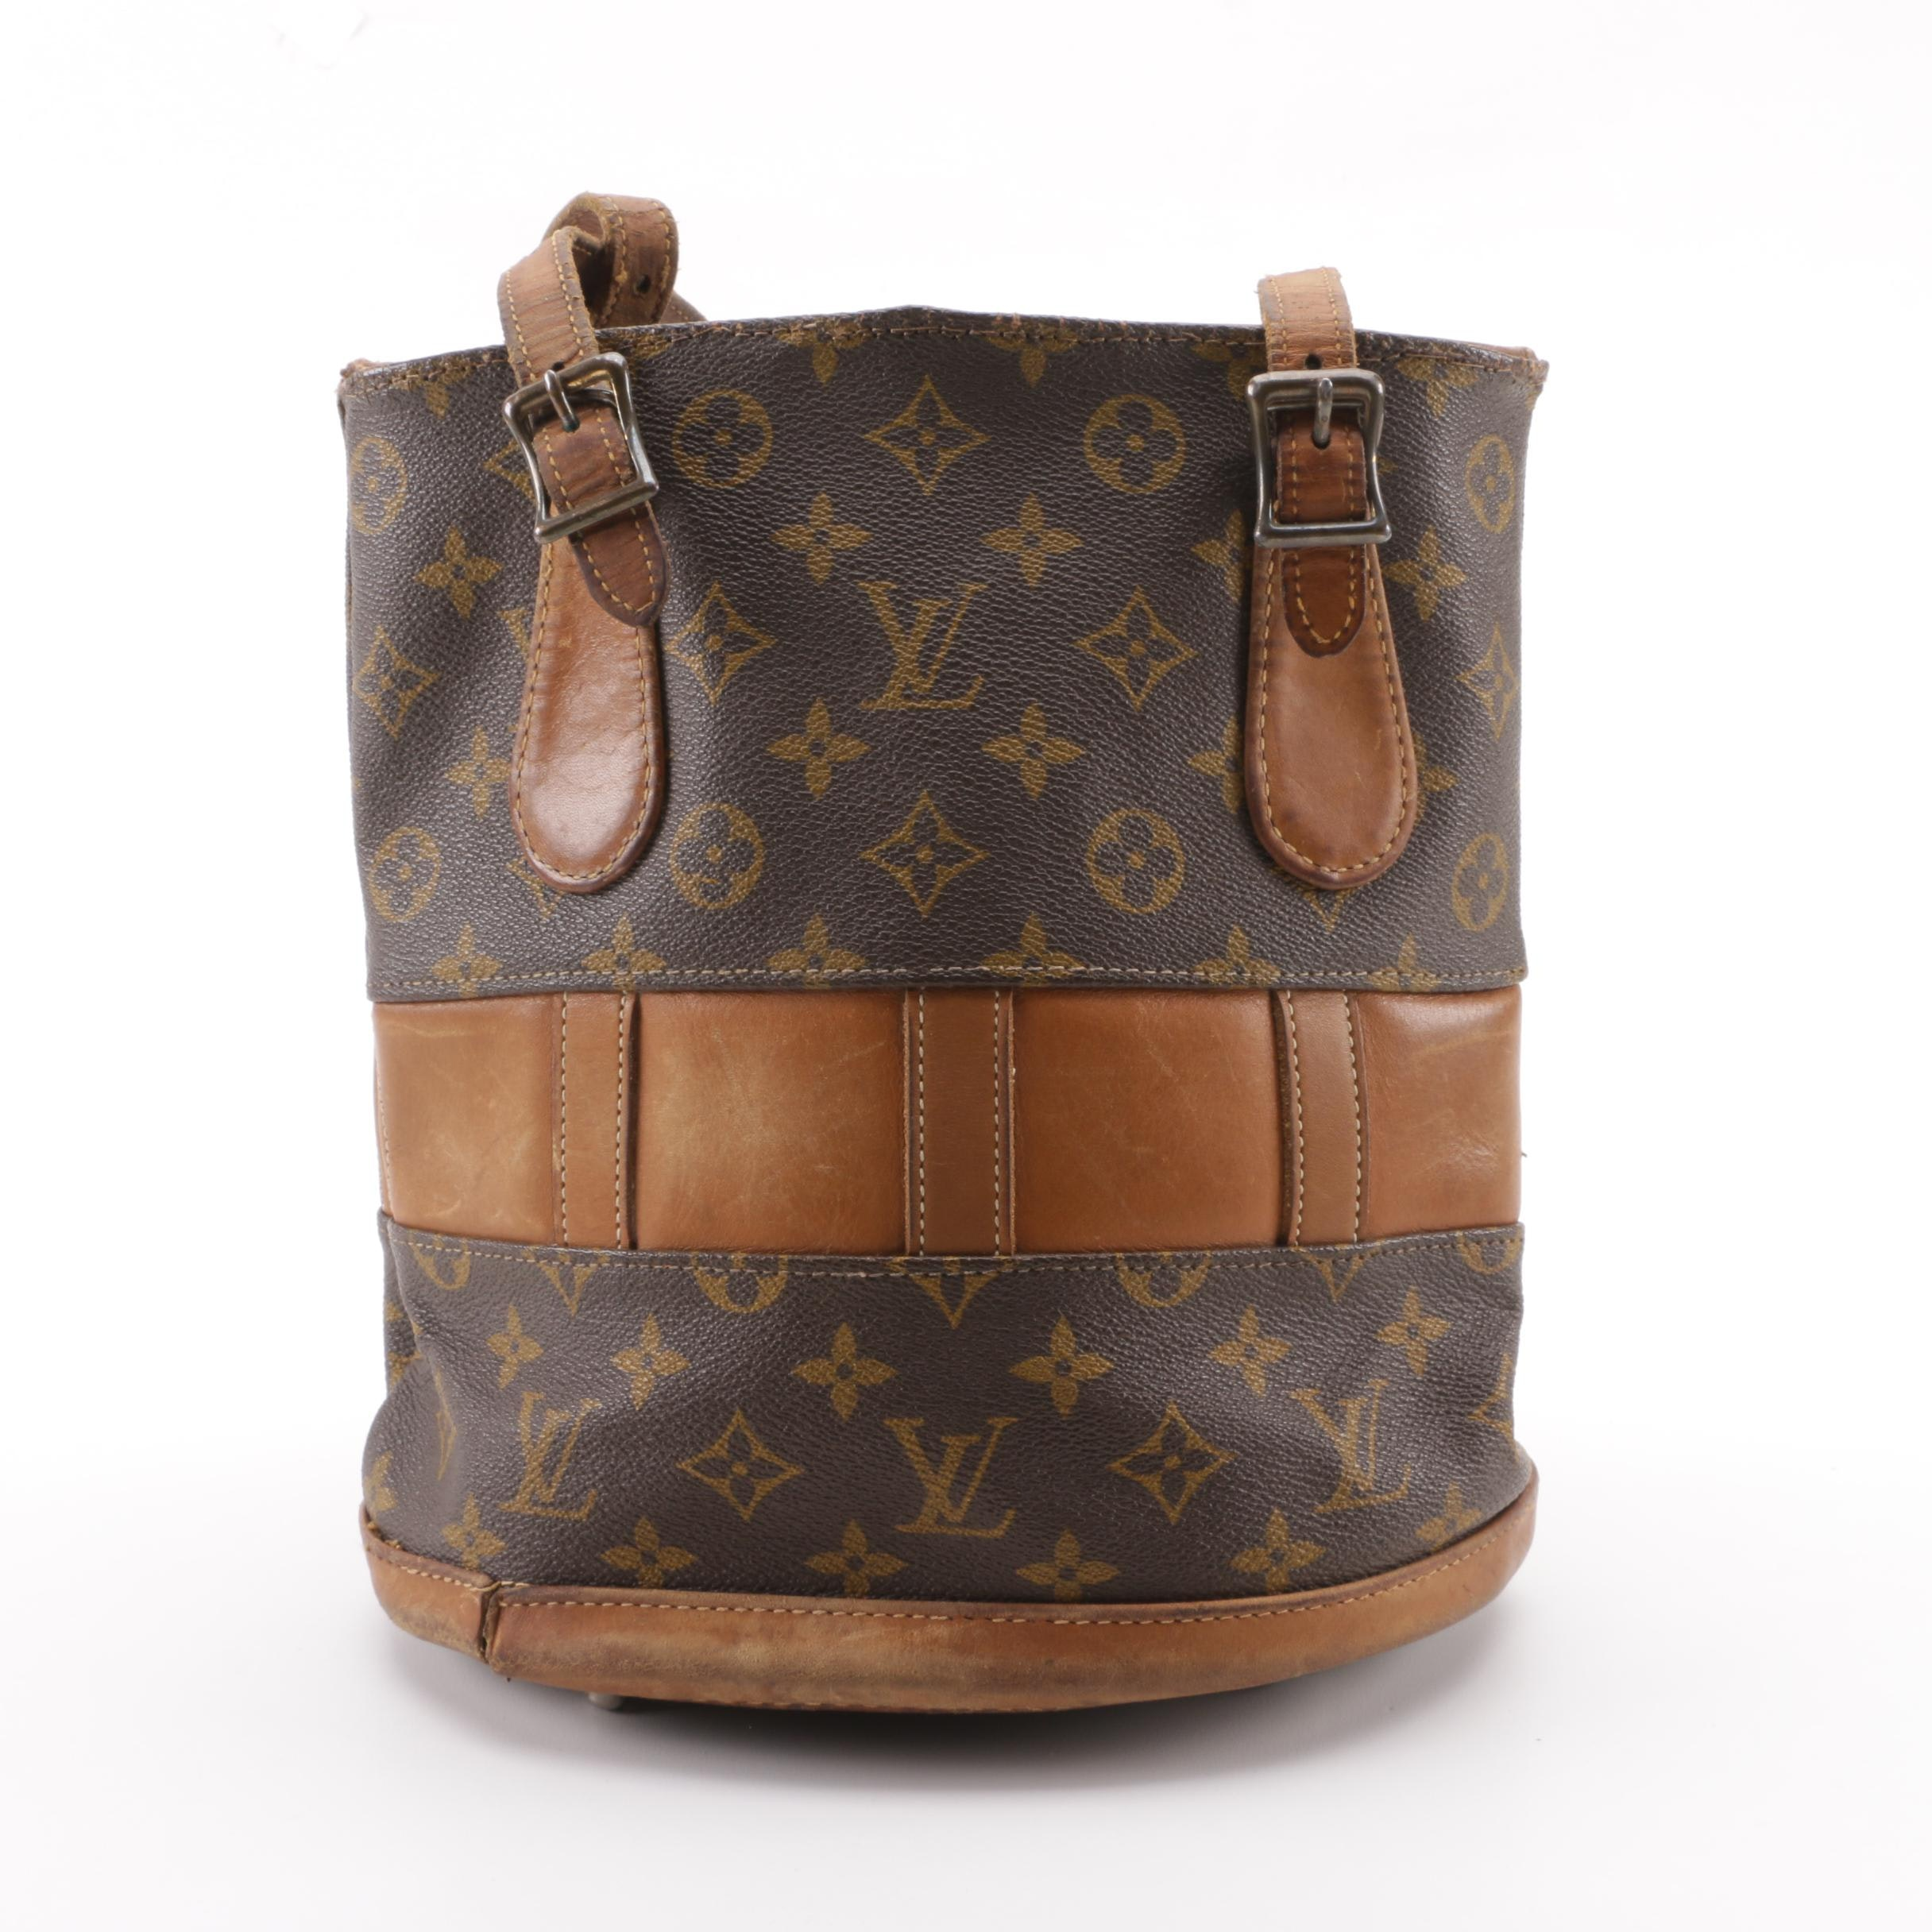 Vintage The French Company for Louis Vuitton Monogram Canvas Bucket PM Bag